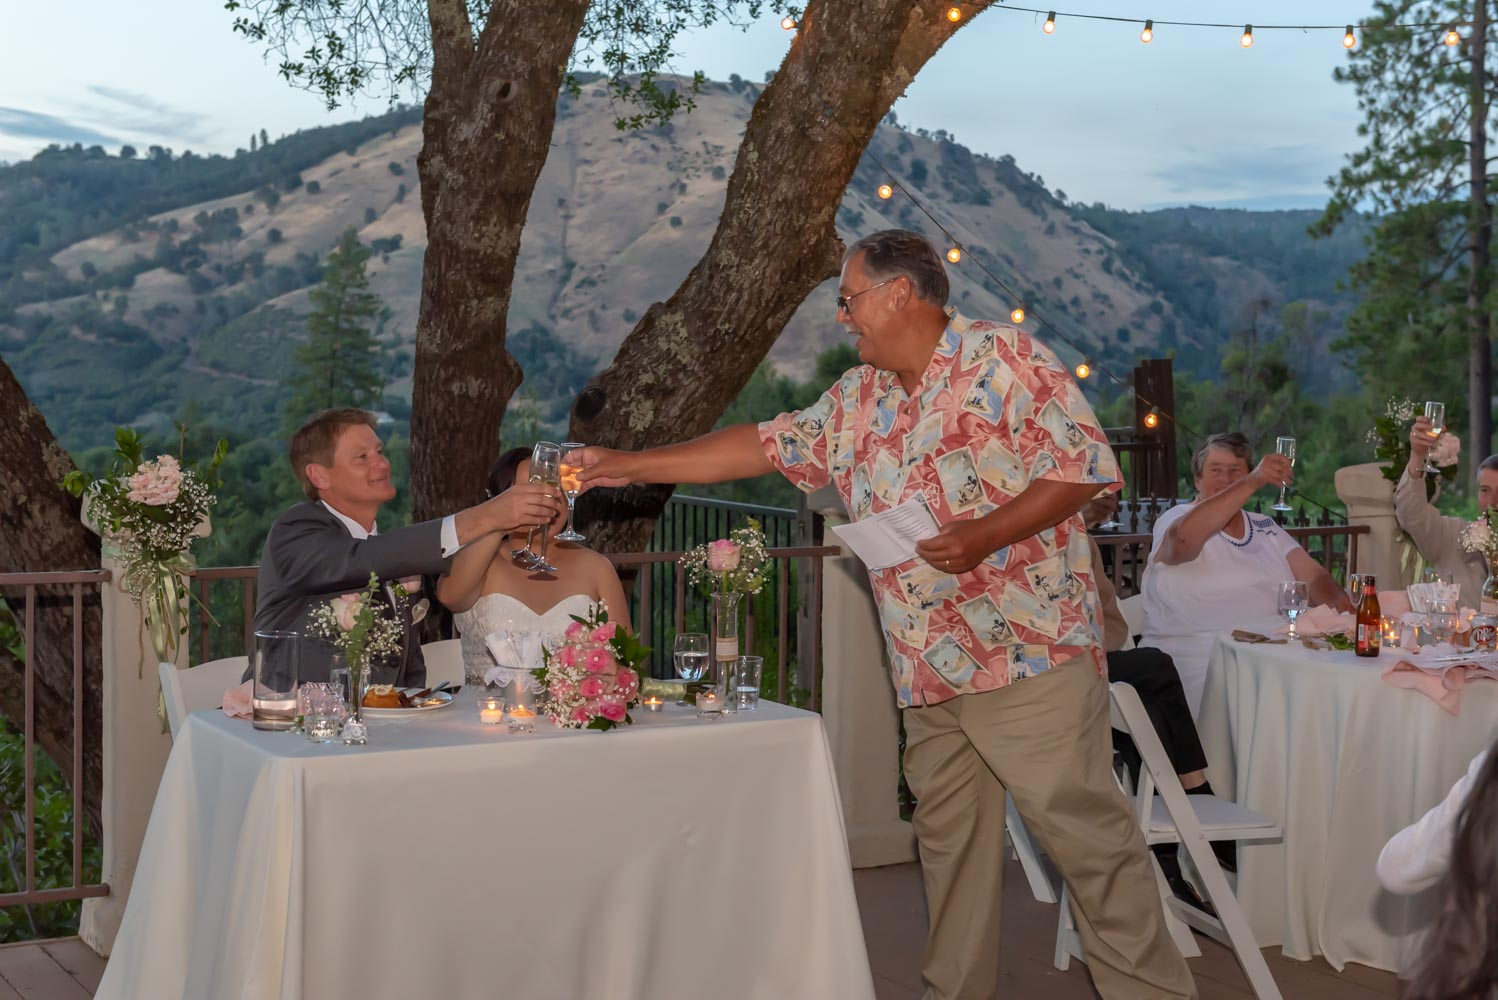 Standing best man toasting seated bride and groom, with foothills and forest in background